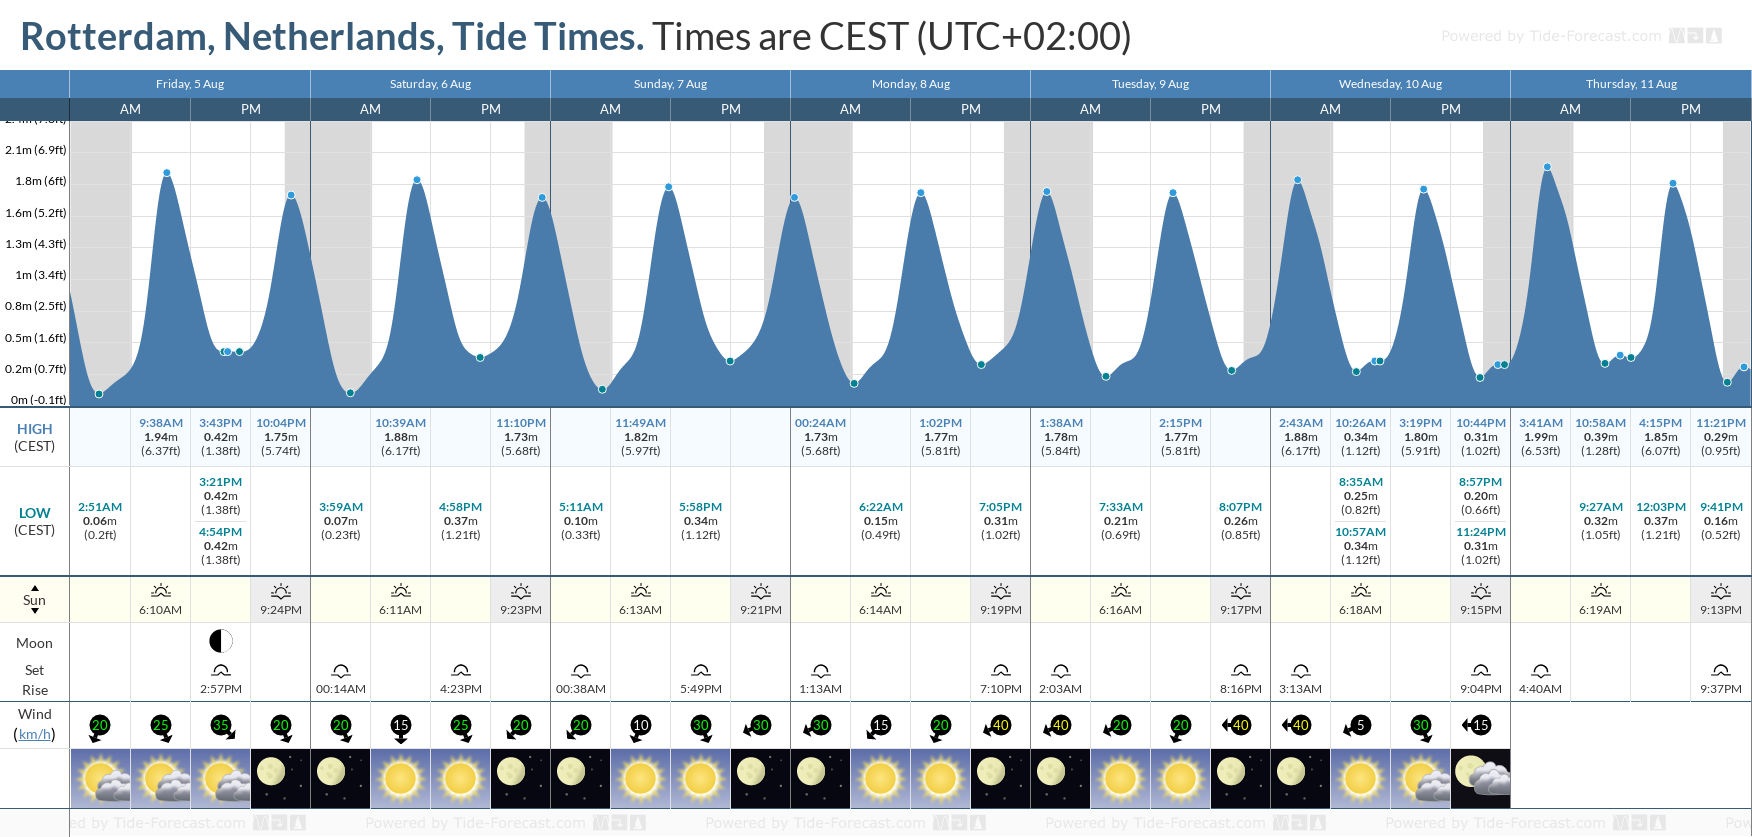 Rotterdam, Netherlands Tide Chart including high and low tide tide times for the next 7 days